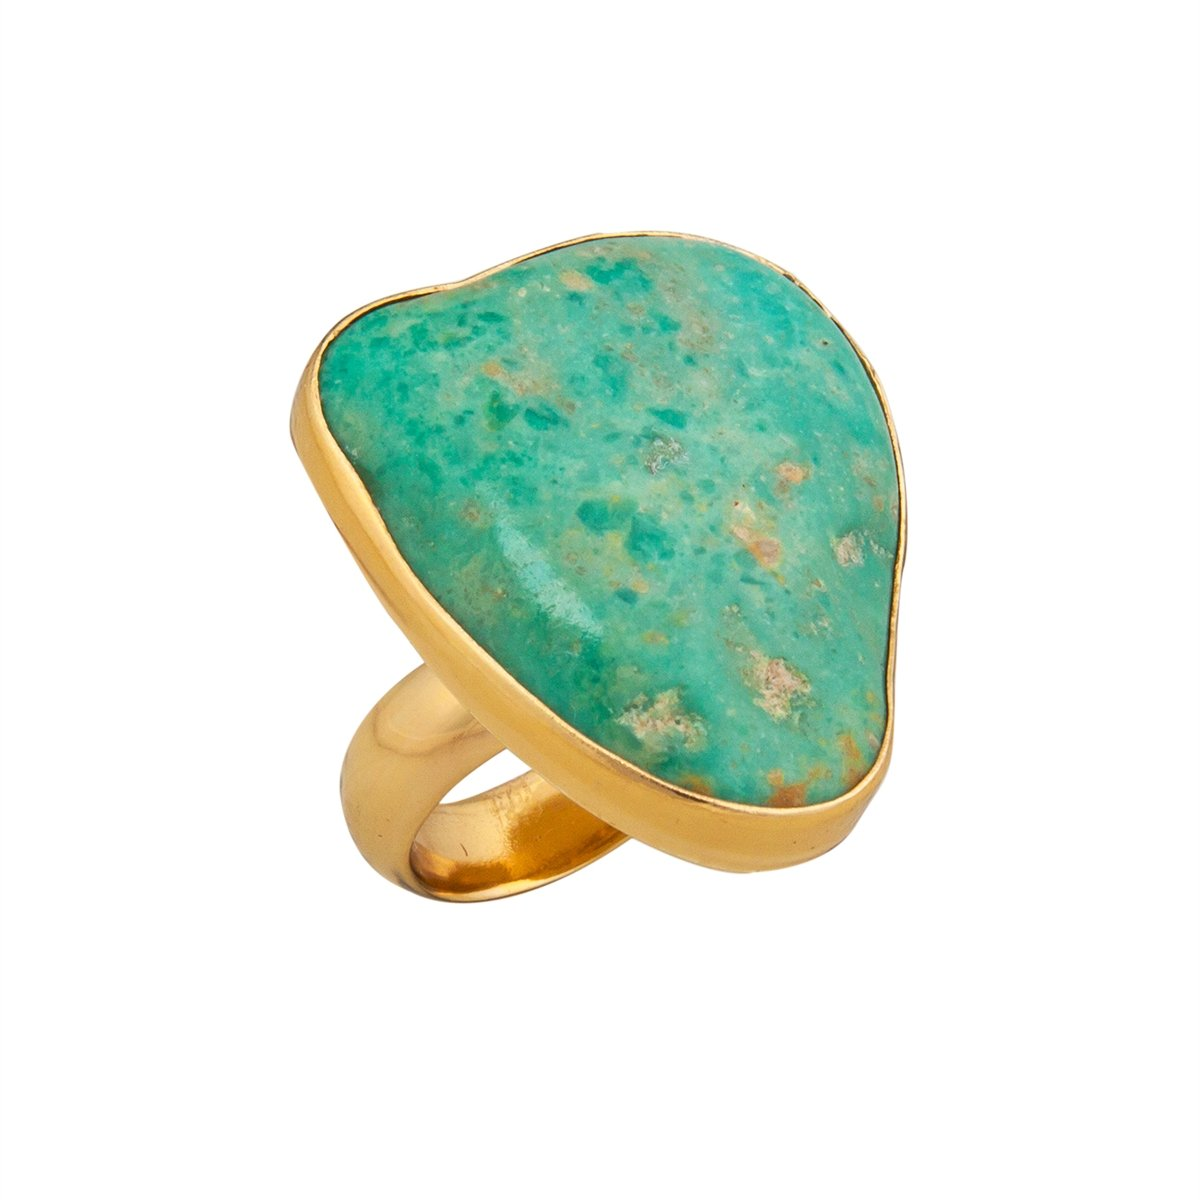 Alchemia Campo Frio Turquoise Adjustable Ring | Charles Albert Jewelry